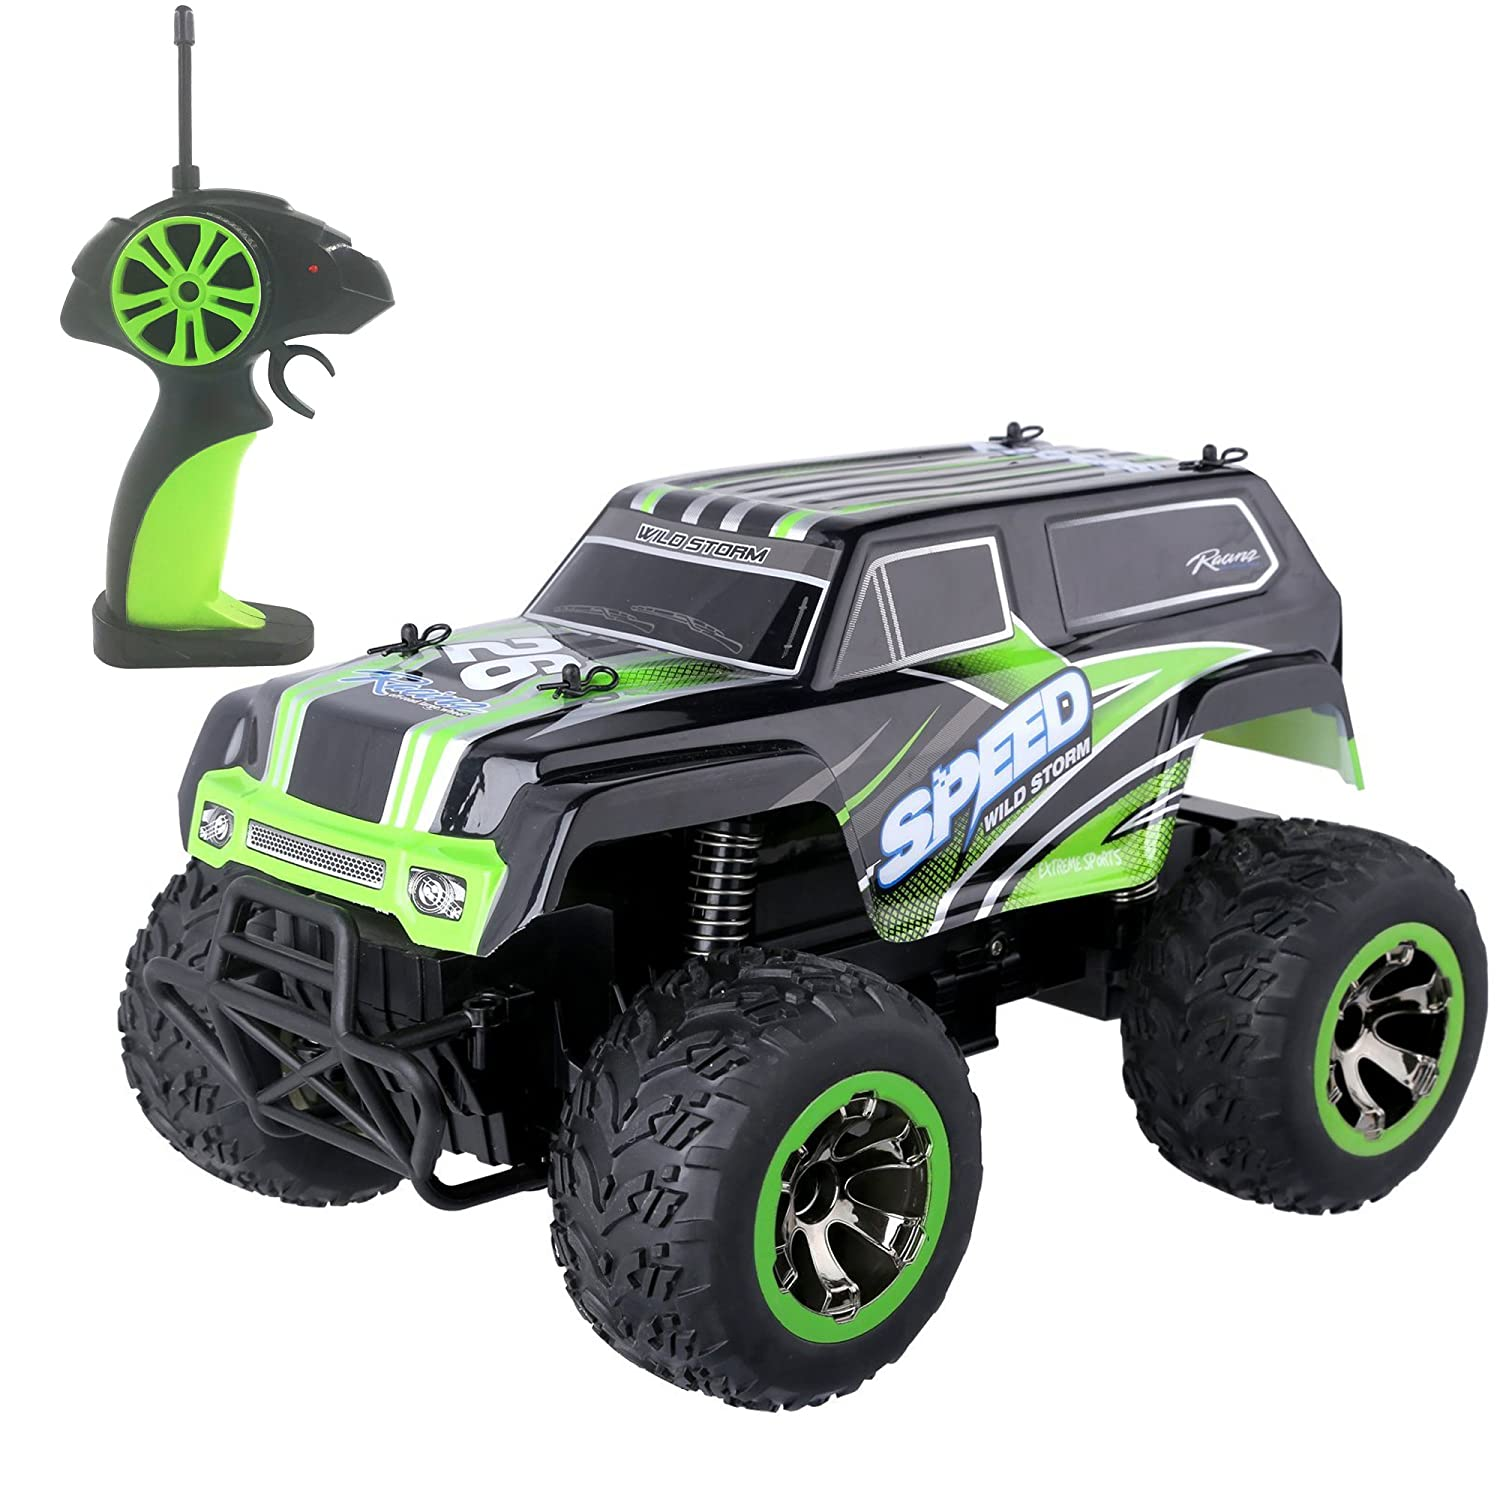 SZJJX Remote Control Car RC Off-Road Water Resistant Crawler Truck 2.4Ghz 2WD RC Truck 1:18 Radio Control Buggy Electric Fast Vehicle Hobby